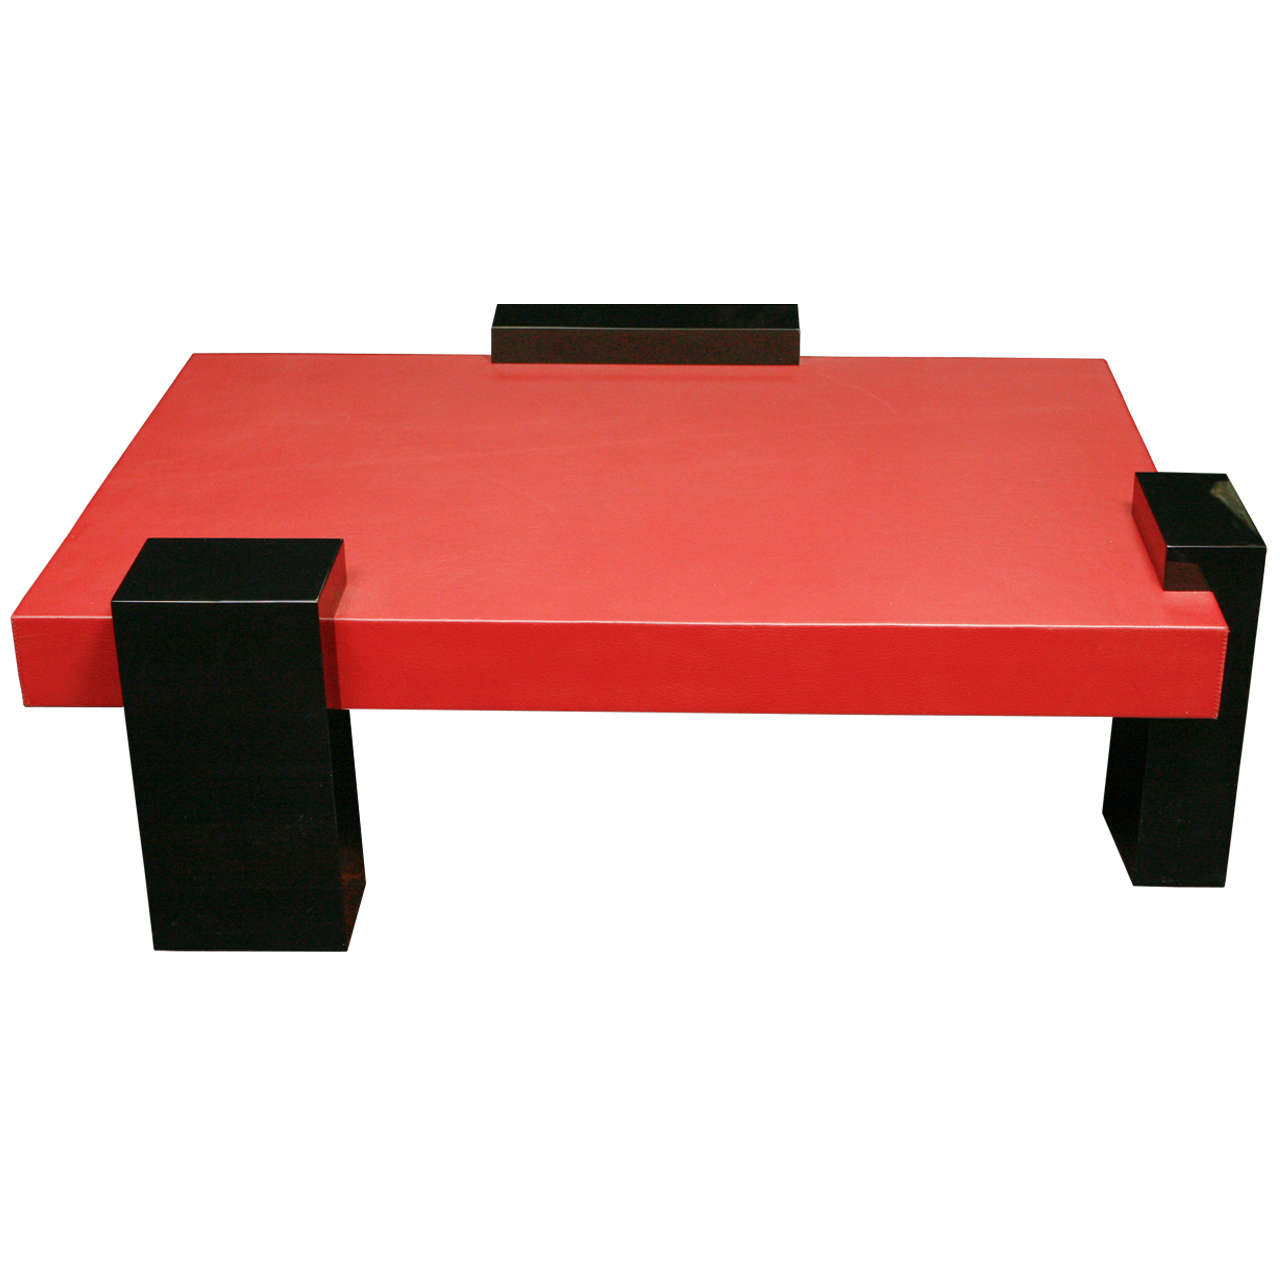 Modernistic Coffee Table In Red Leather For Sale At 1stdibs